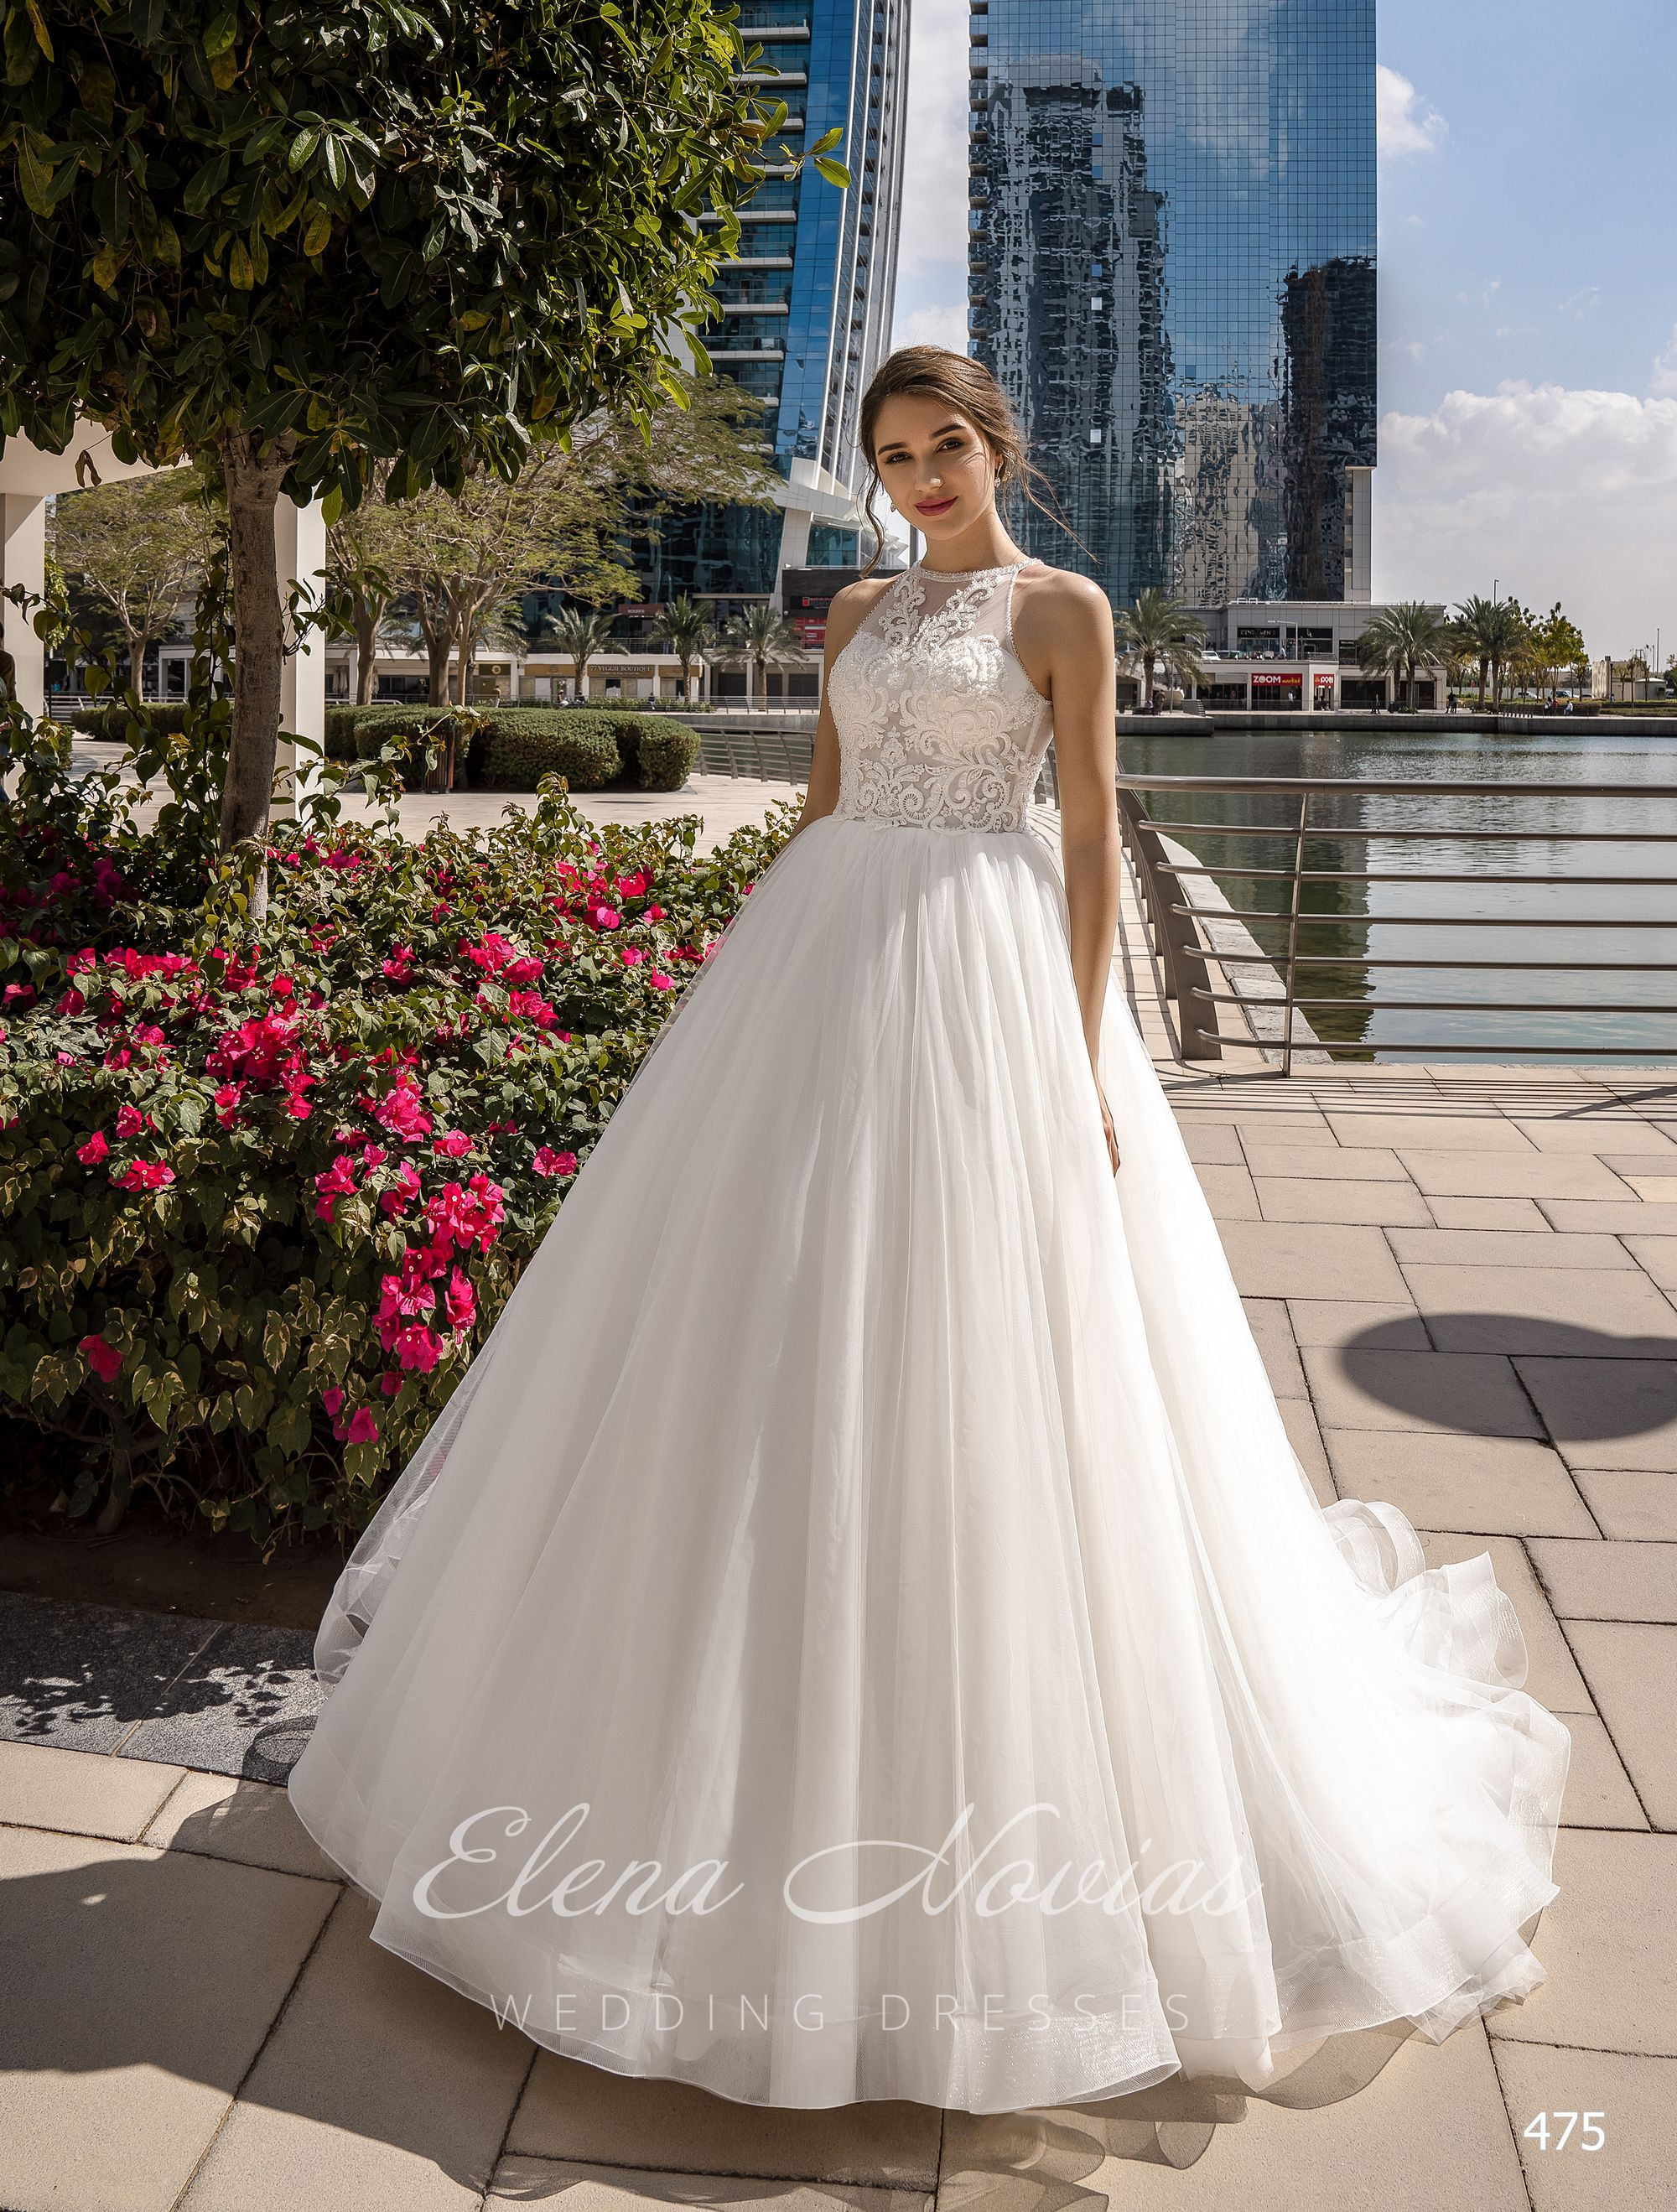 Wedding dresses 475